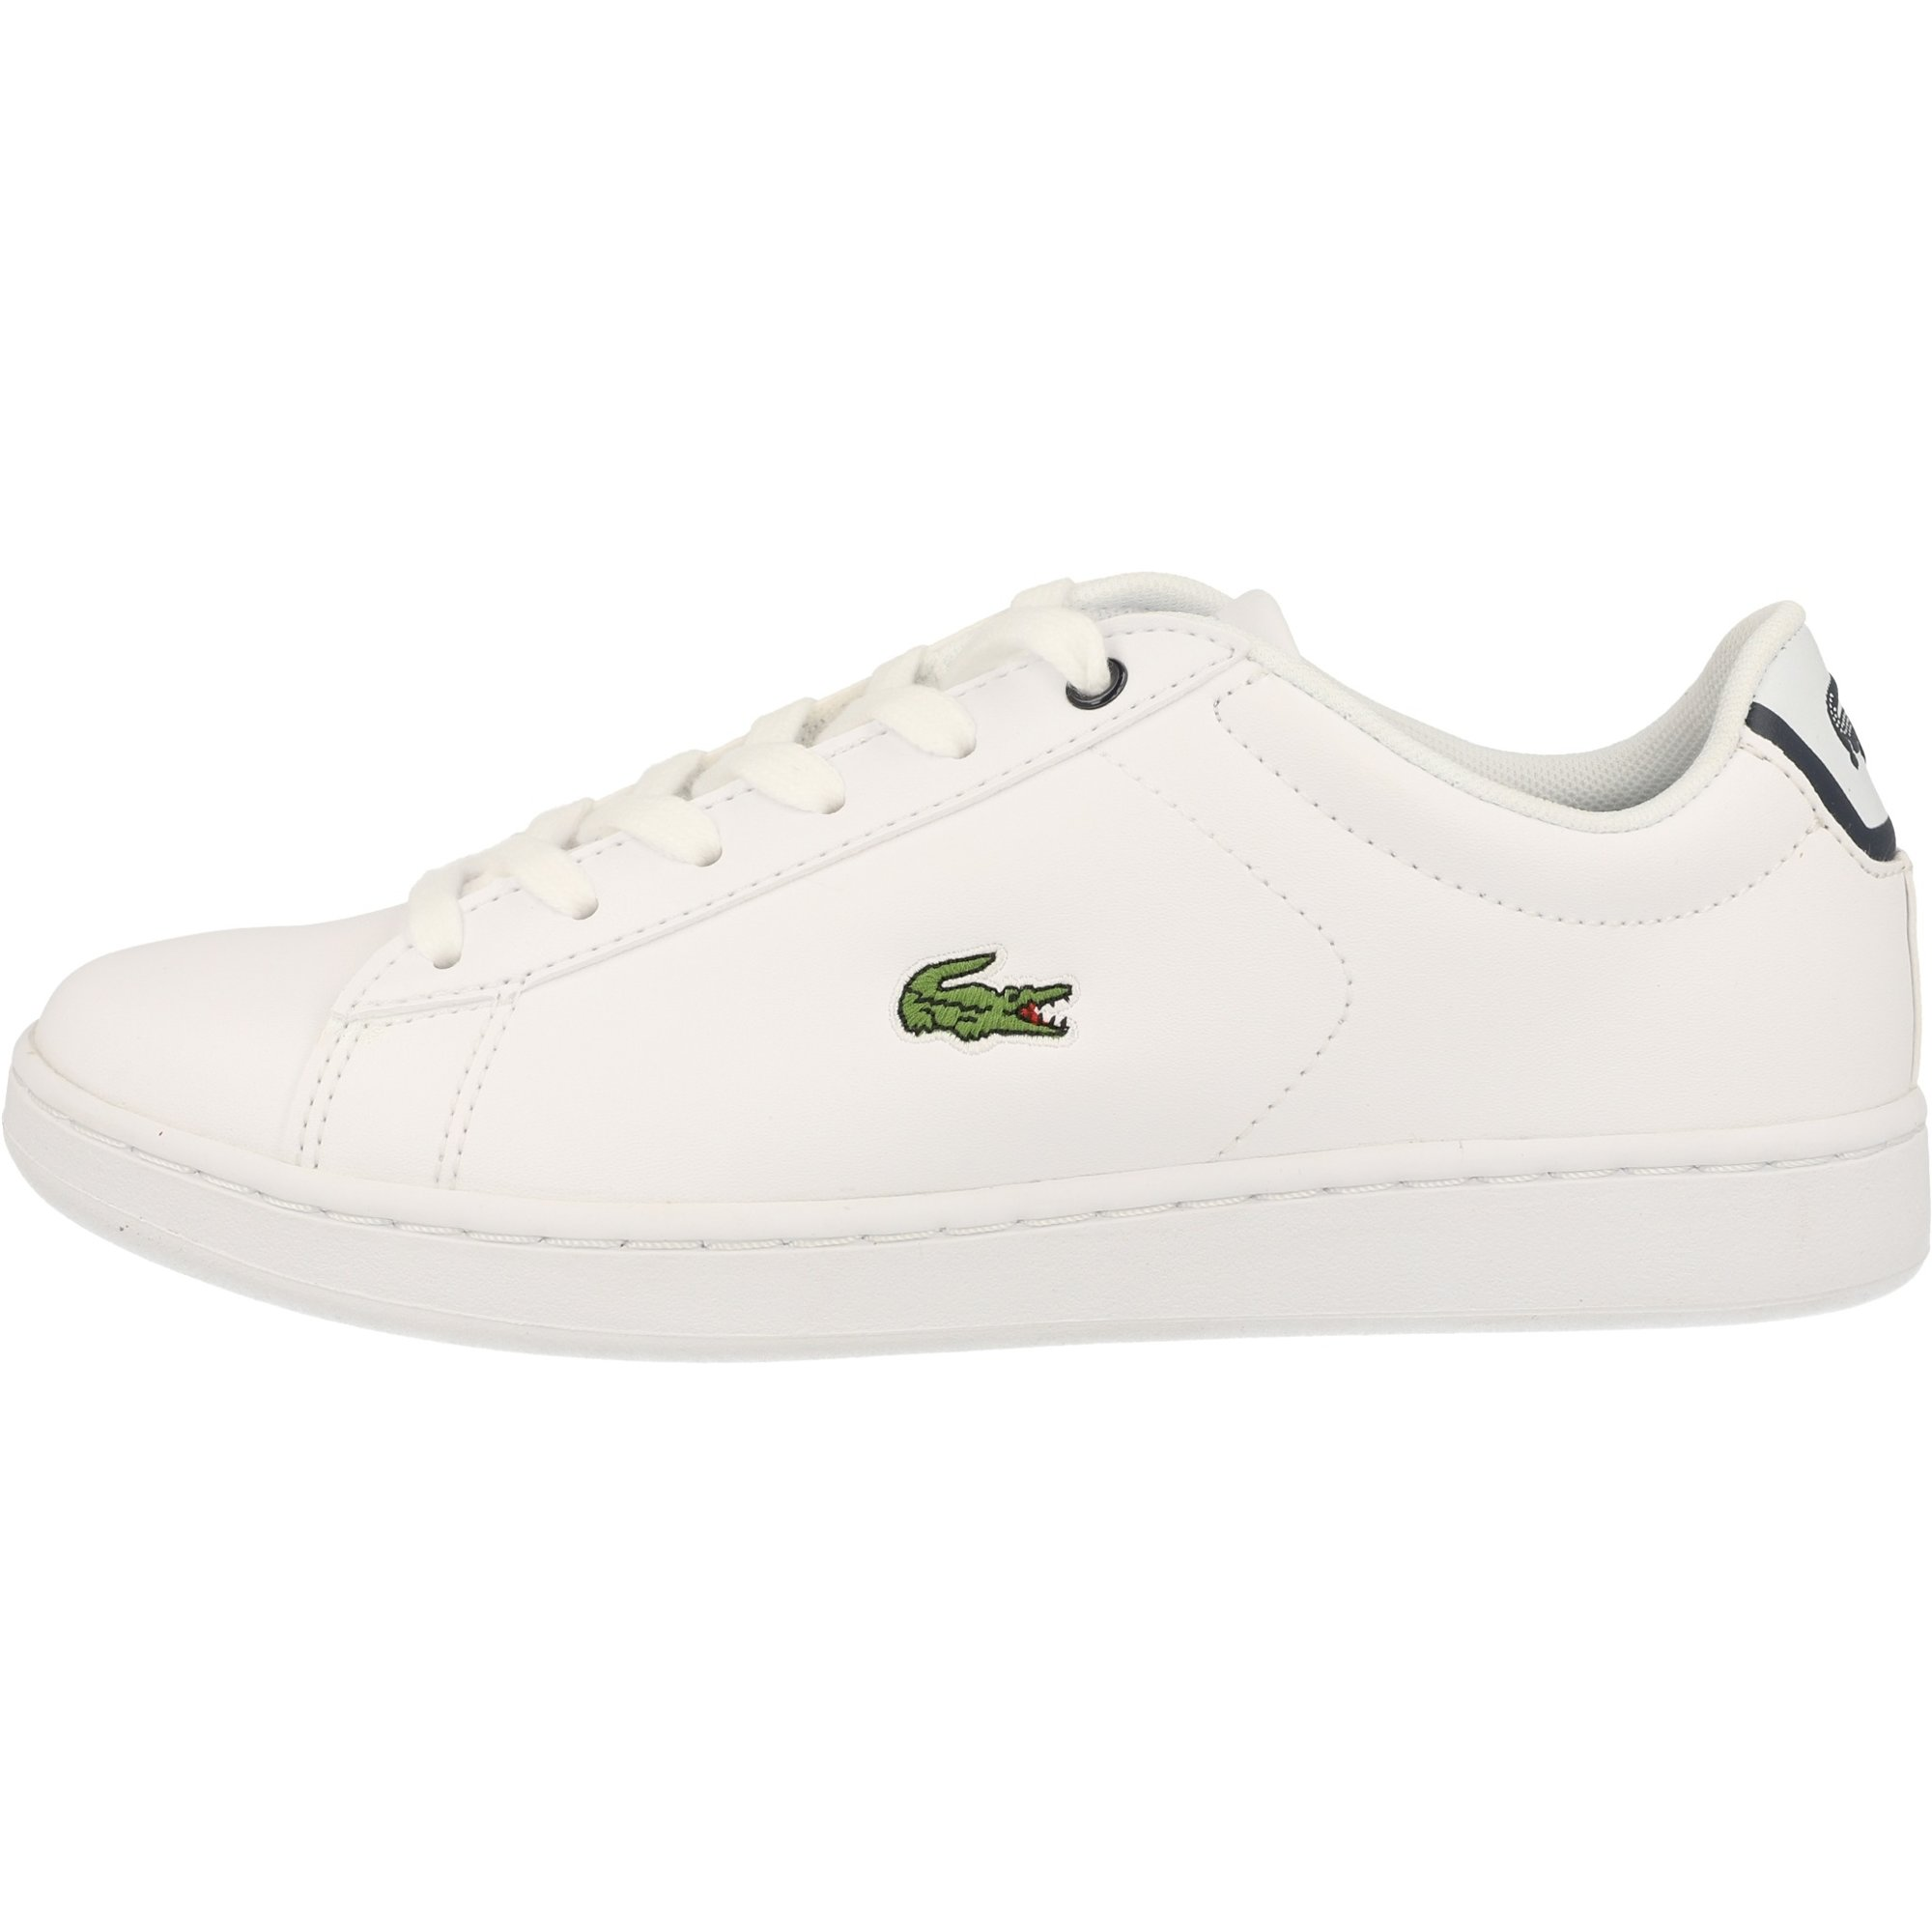 Kids/'s Lacoste Carnaby Evo BL 1 Inf Low rise Trainers in White